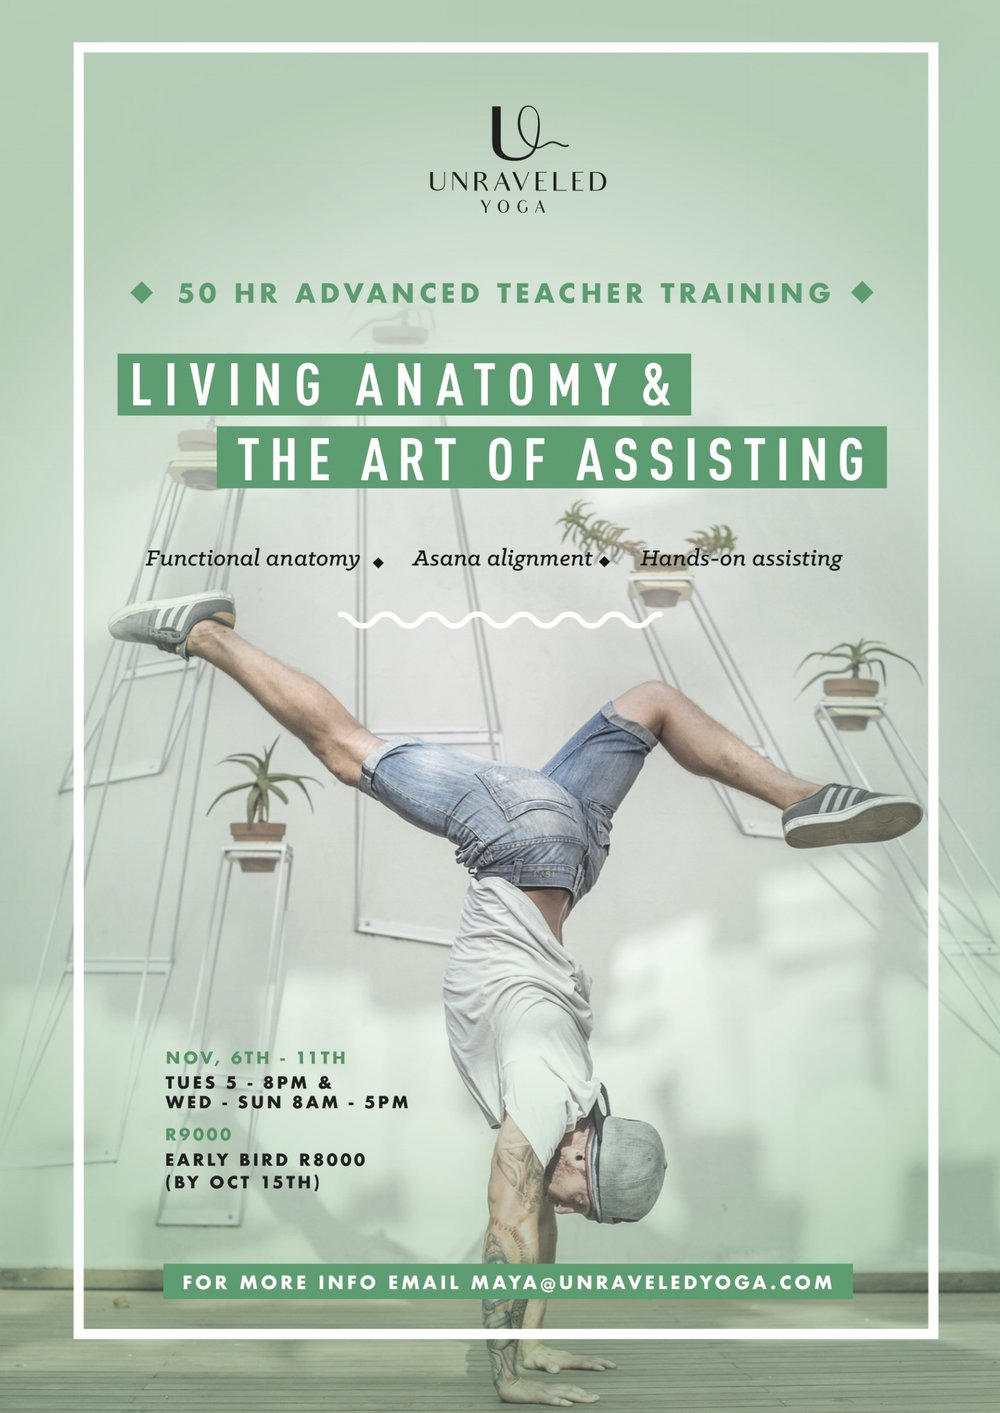 anatomy and assisting advanced teacher training